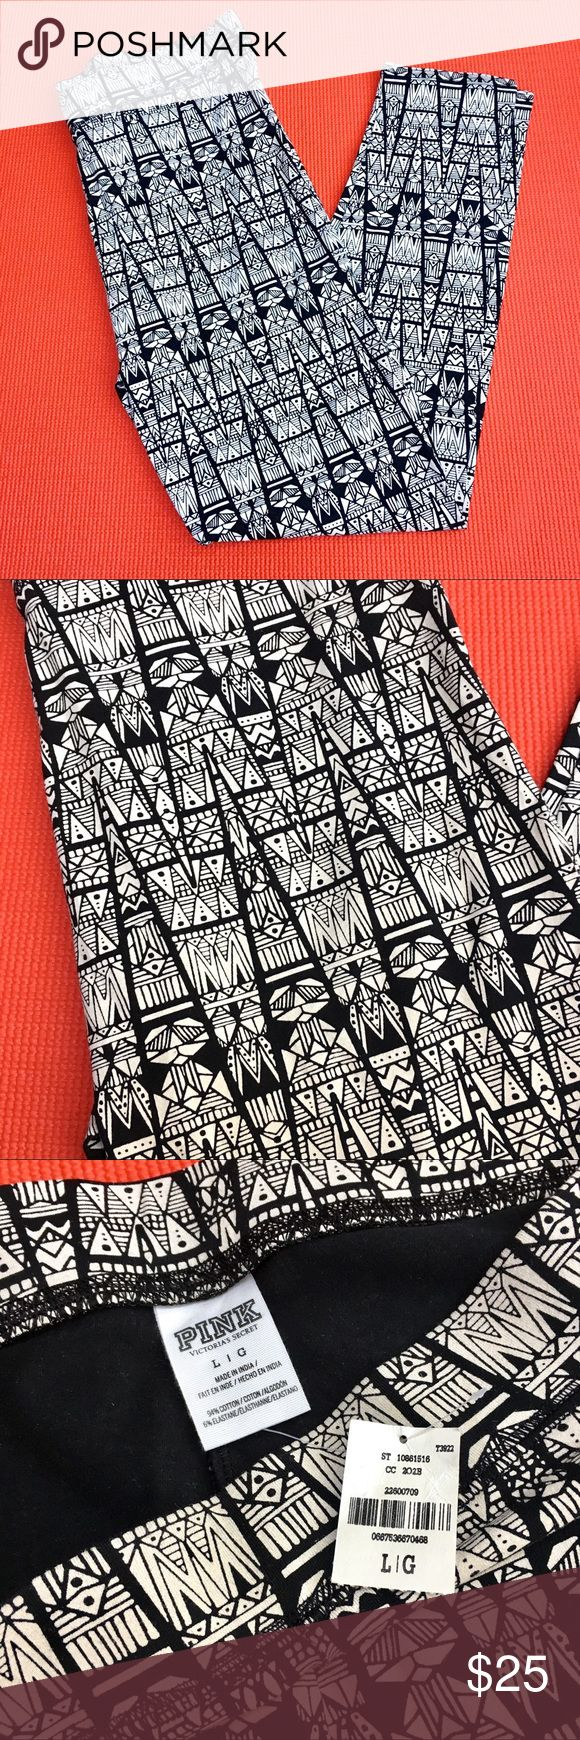 NWT PINK Victoria's Secret Tribal Print Leggings Brand new with tags, never worn! From a smoke and pet free home. No trades. Color is closest to last picture. PINK Victoria's Secret Pants Leggings